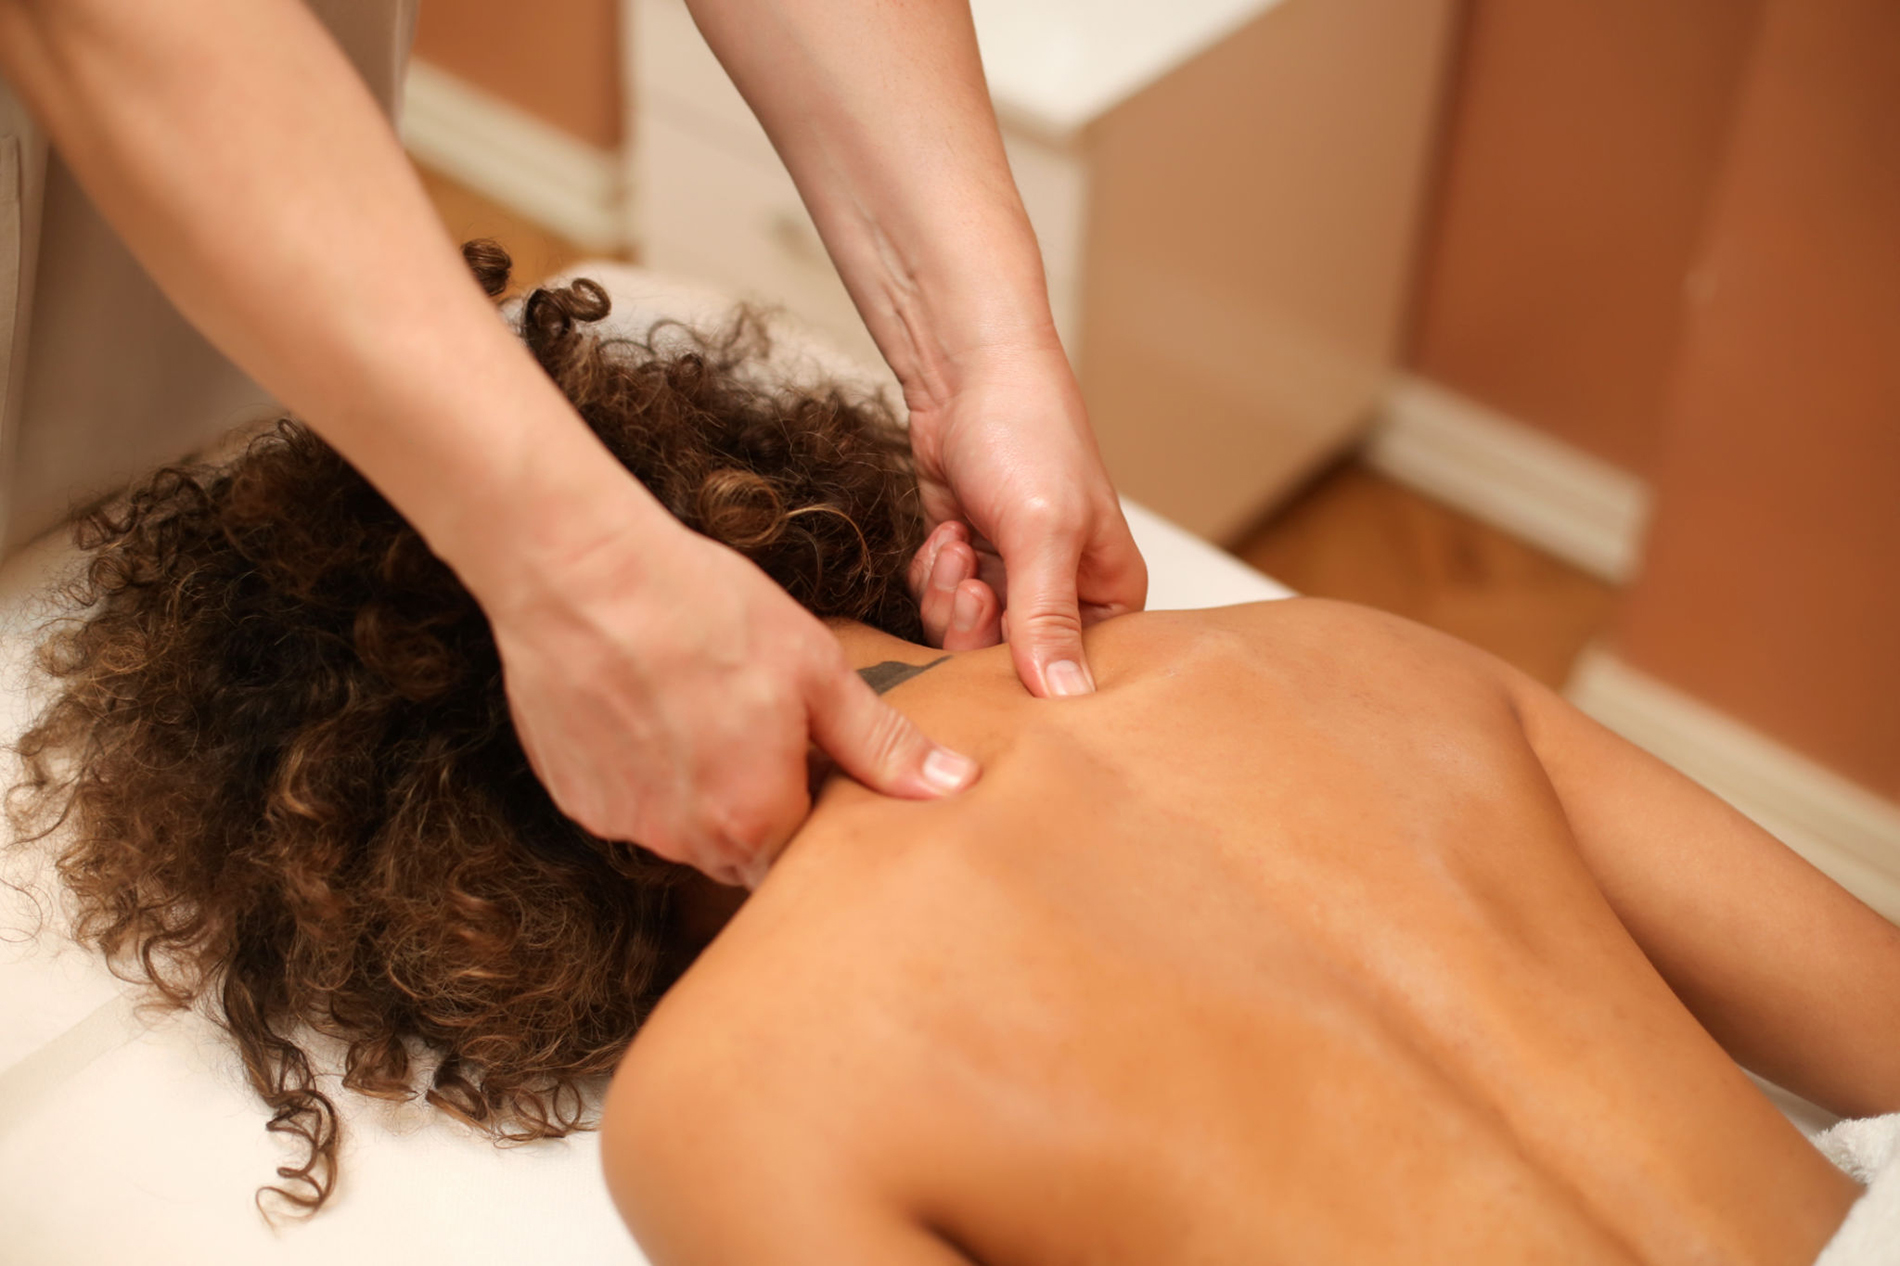 Massage treatment - neck and whole body massage by womans. doing massaging using oil. neck and whole body massage, relaxing massage, strong hands of a masseur, massage to increase work efficiency